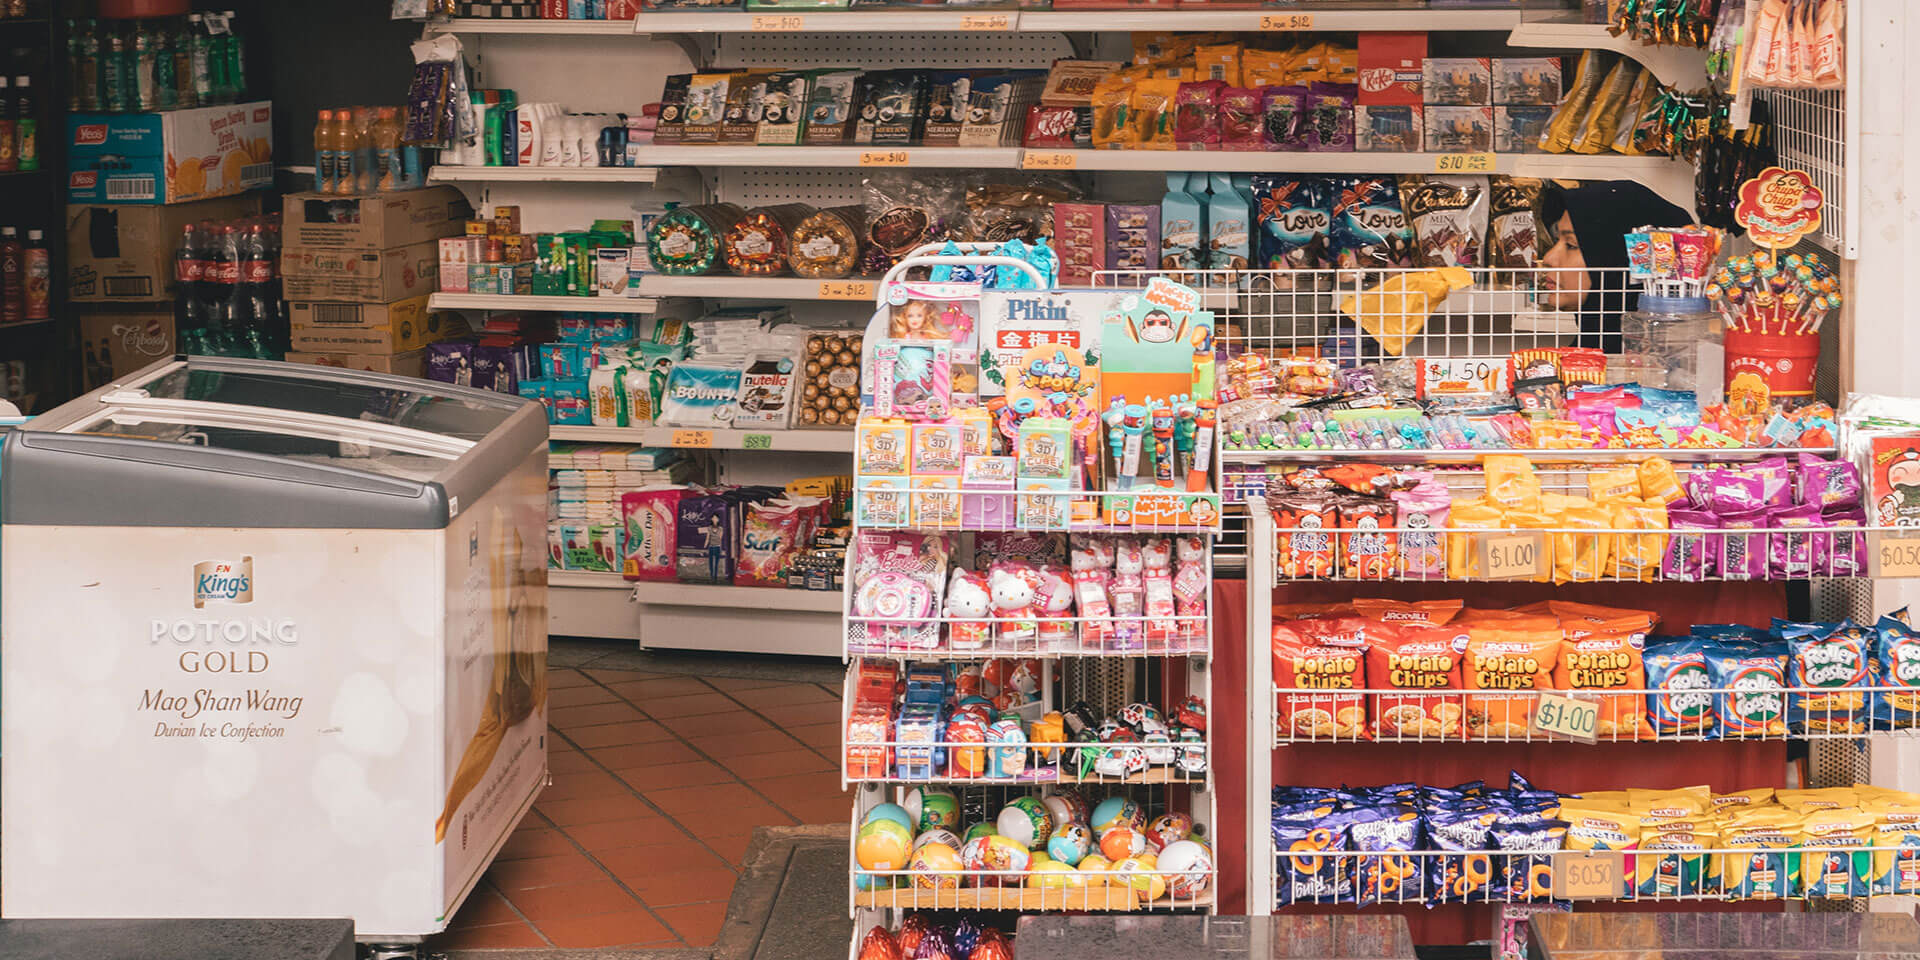 How can independent retailers compete with big brands?